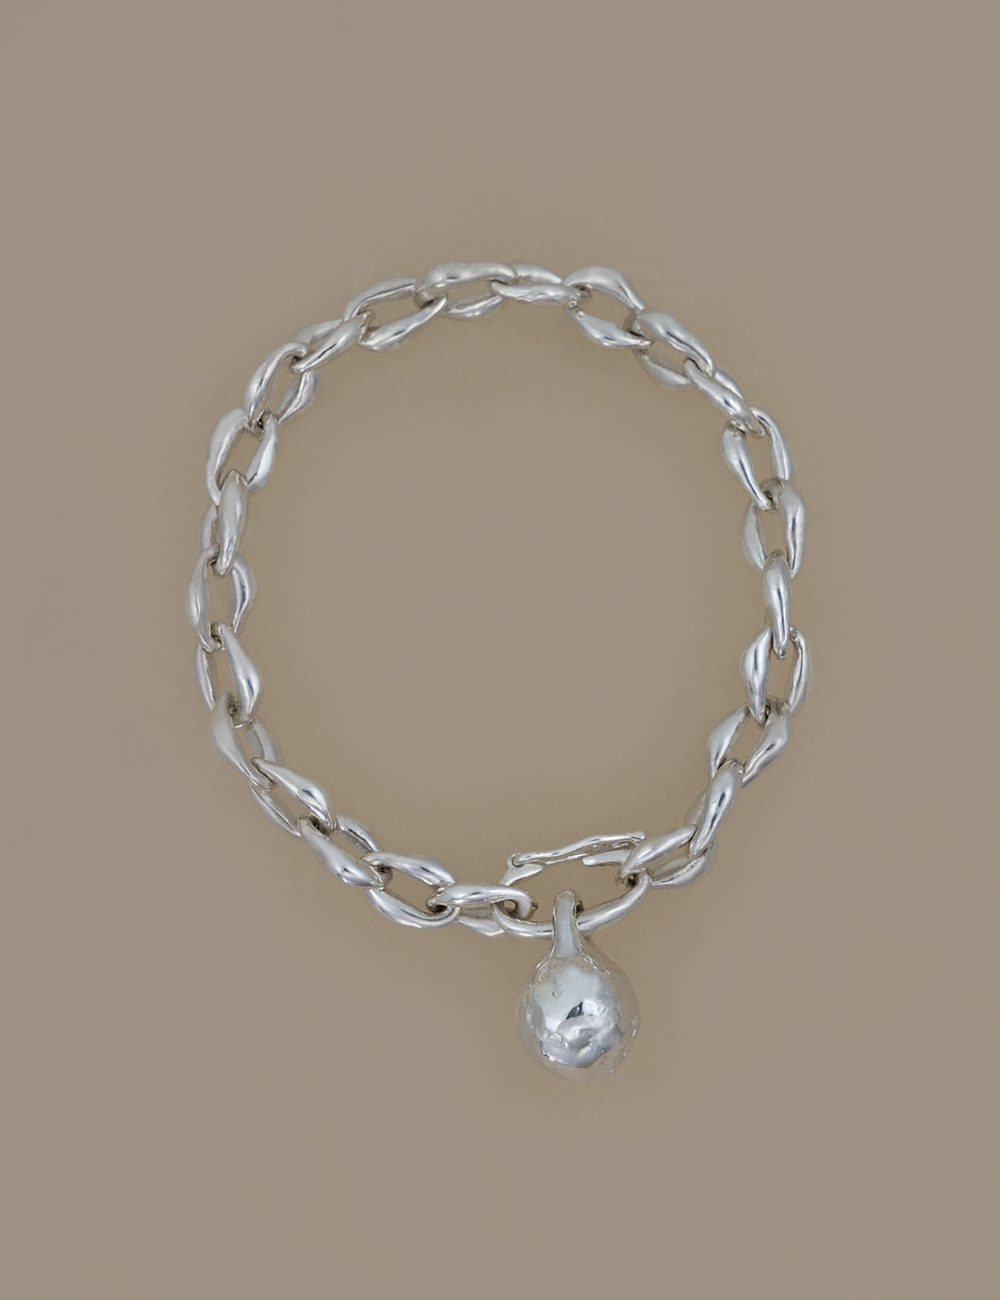 Medium Ball Form Chain Bracelet